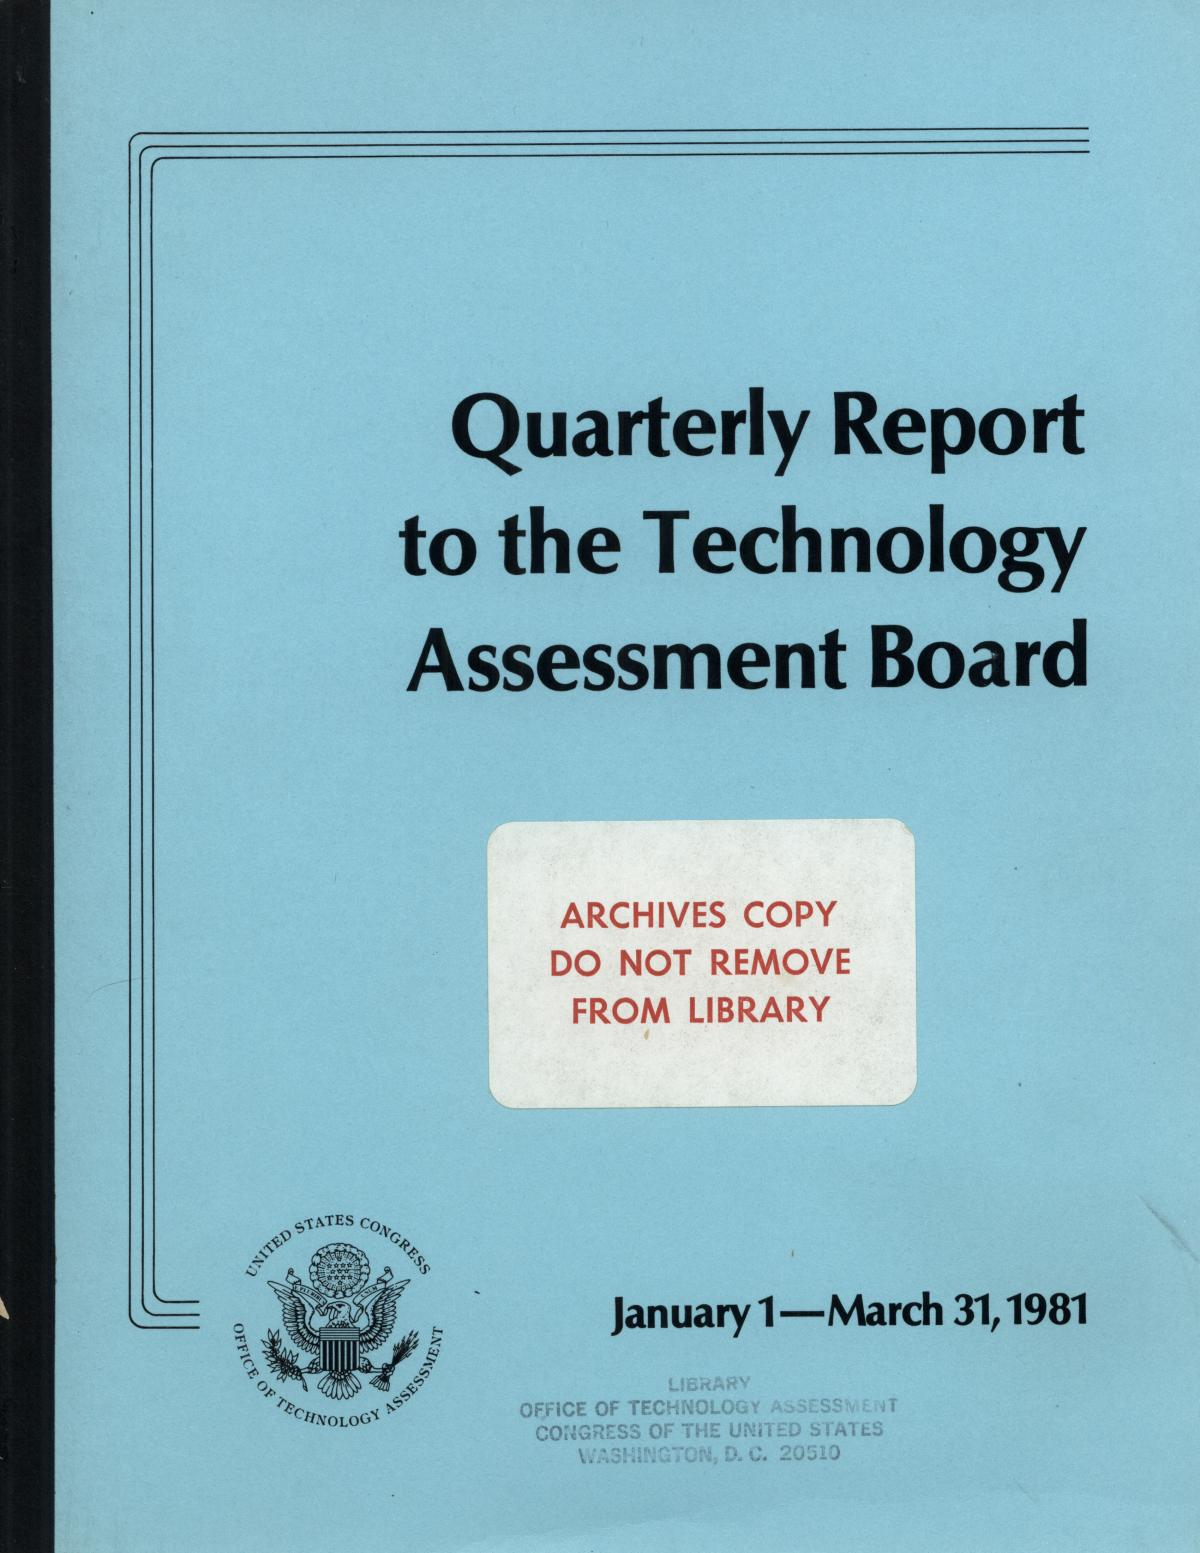 Quarterly Report to the Technology Assessment Board, January 1 - March 31, 1981                                                                                                      Front Cover